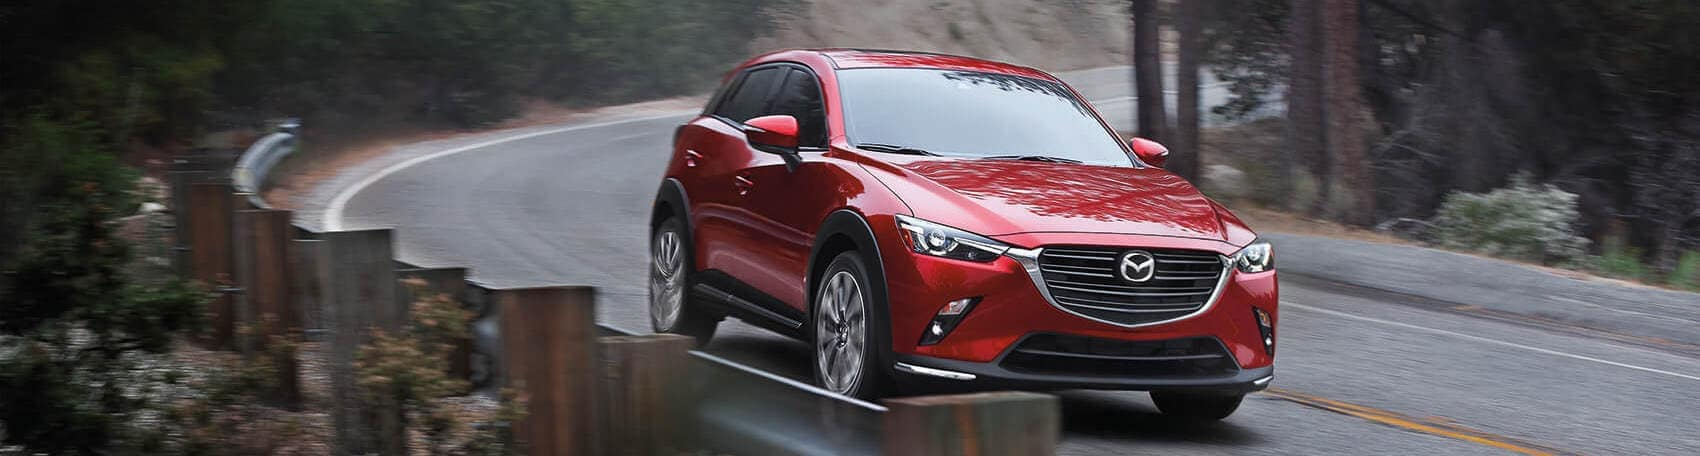 2021 Mazda CX-3 in Oklahoma City